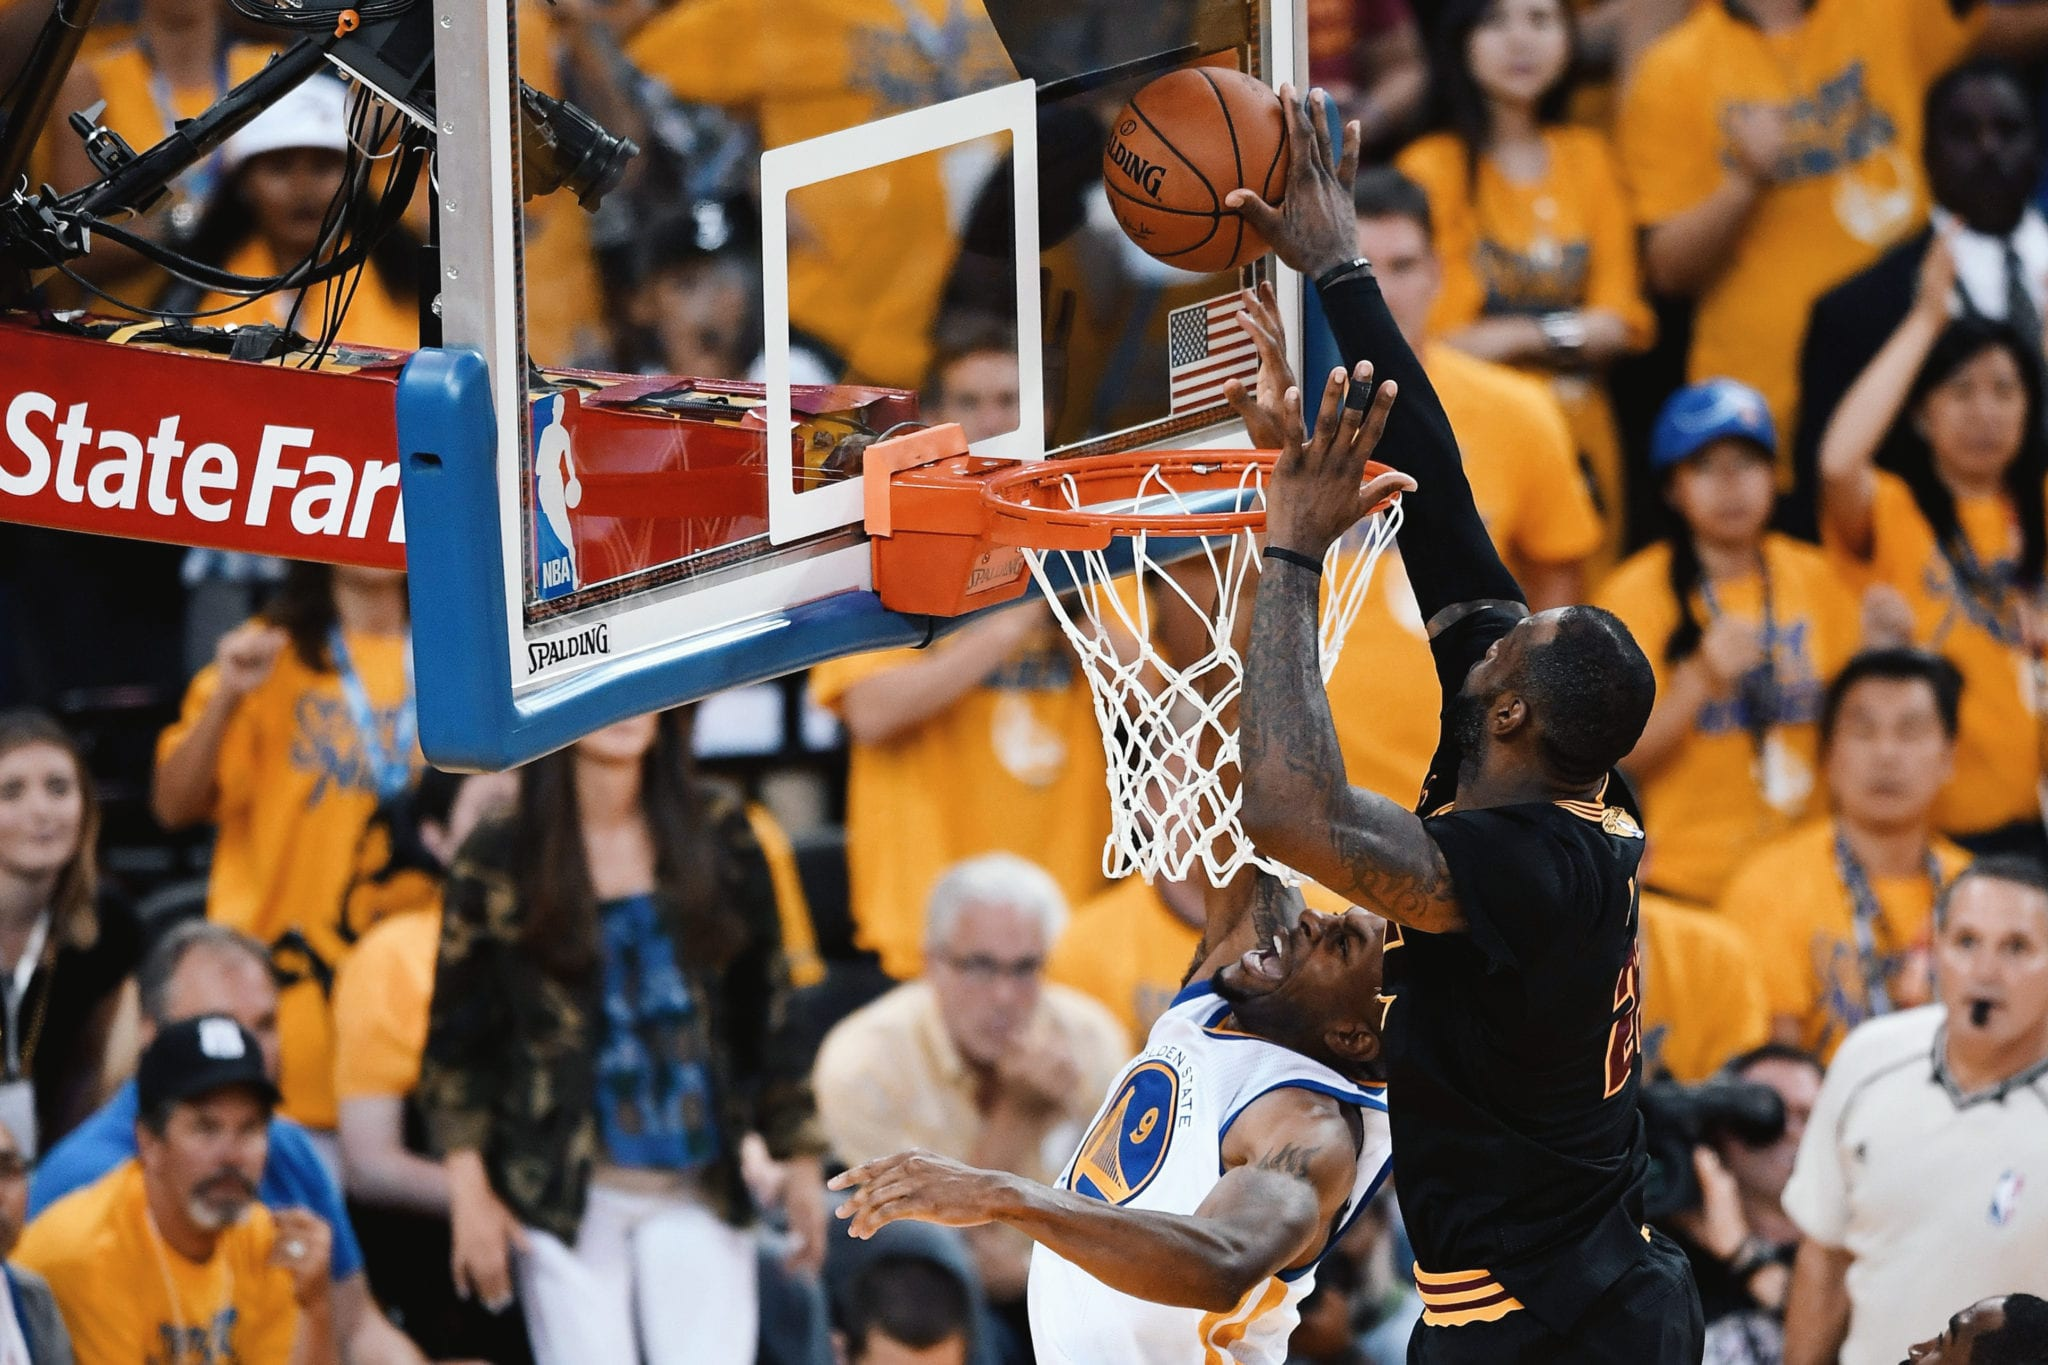 BLOCKED BY JAMES: LeBron James pulls off one of the shocking, athletic and iconic blocks of all-time to help close Game 7 of the 2016 NBA Finals (June 19, 2016).